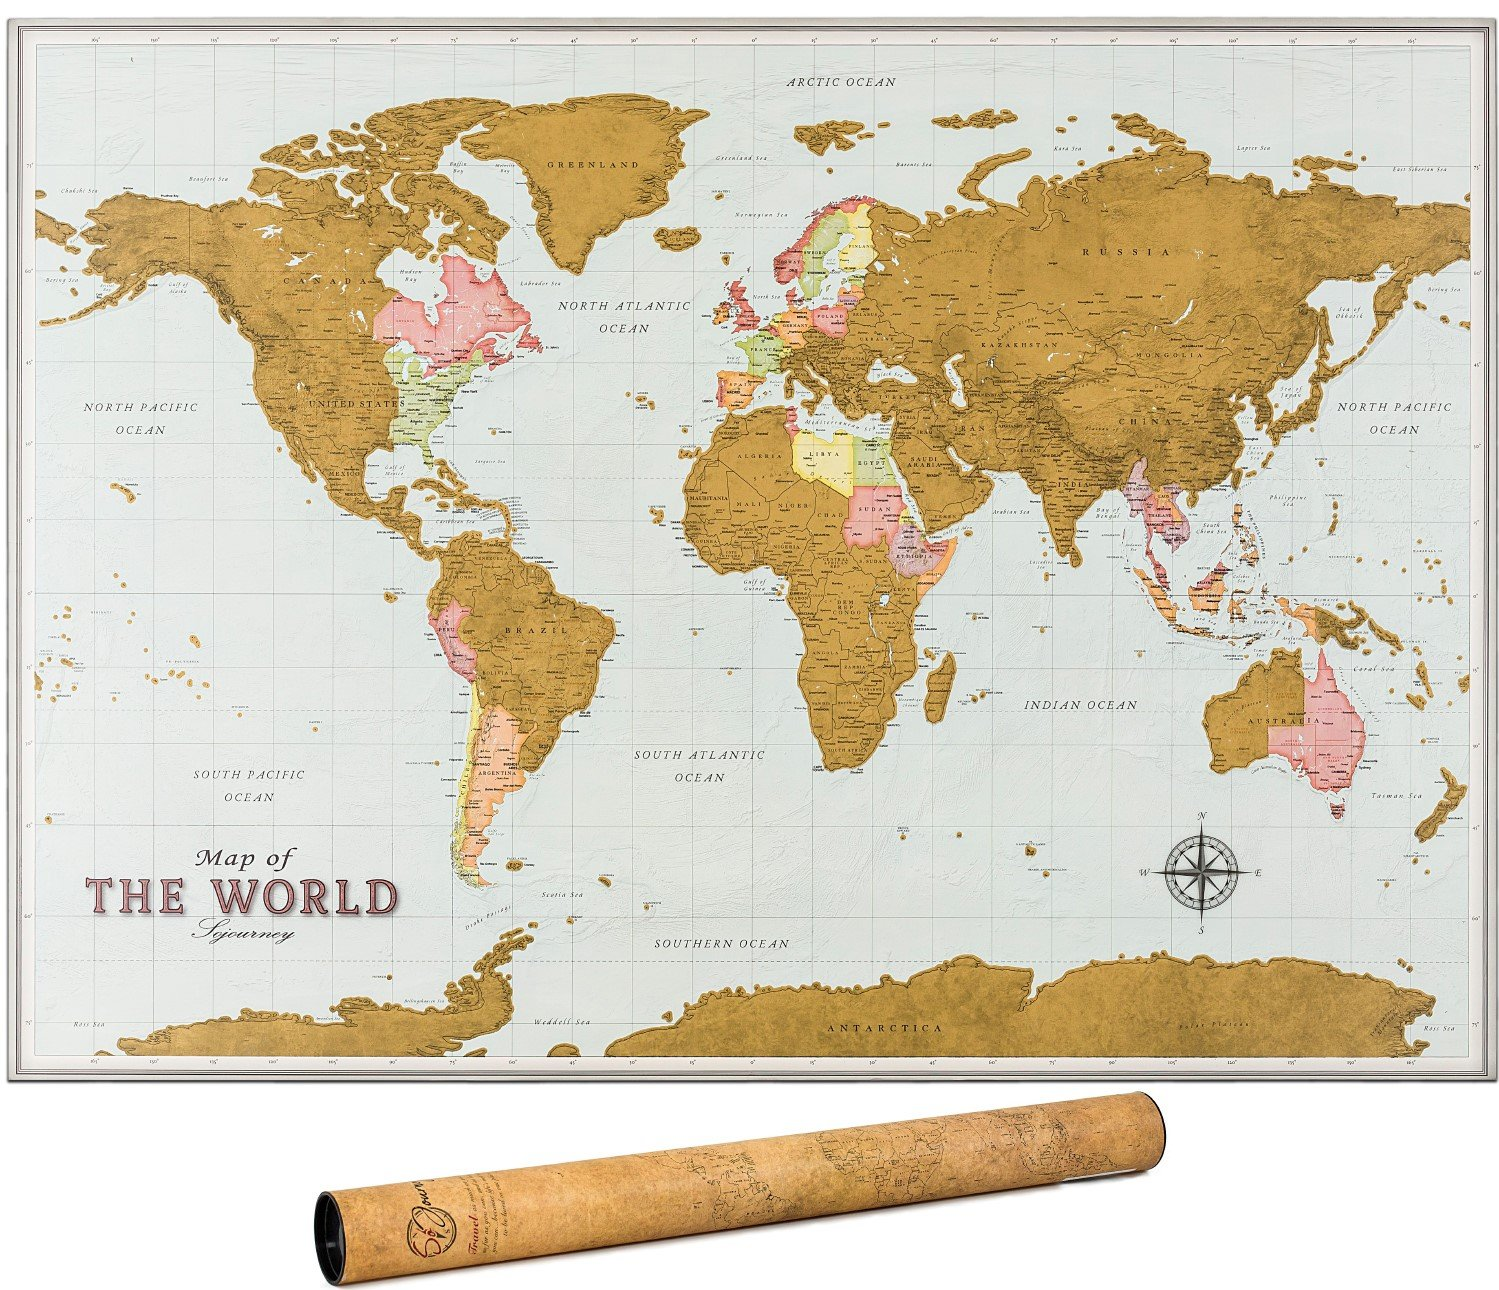 Artistic map of world amazon scratch off map of the world travel map with outlined canadian and us states gumiabroncs Image collections